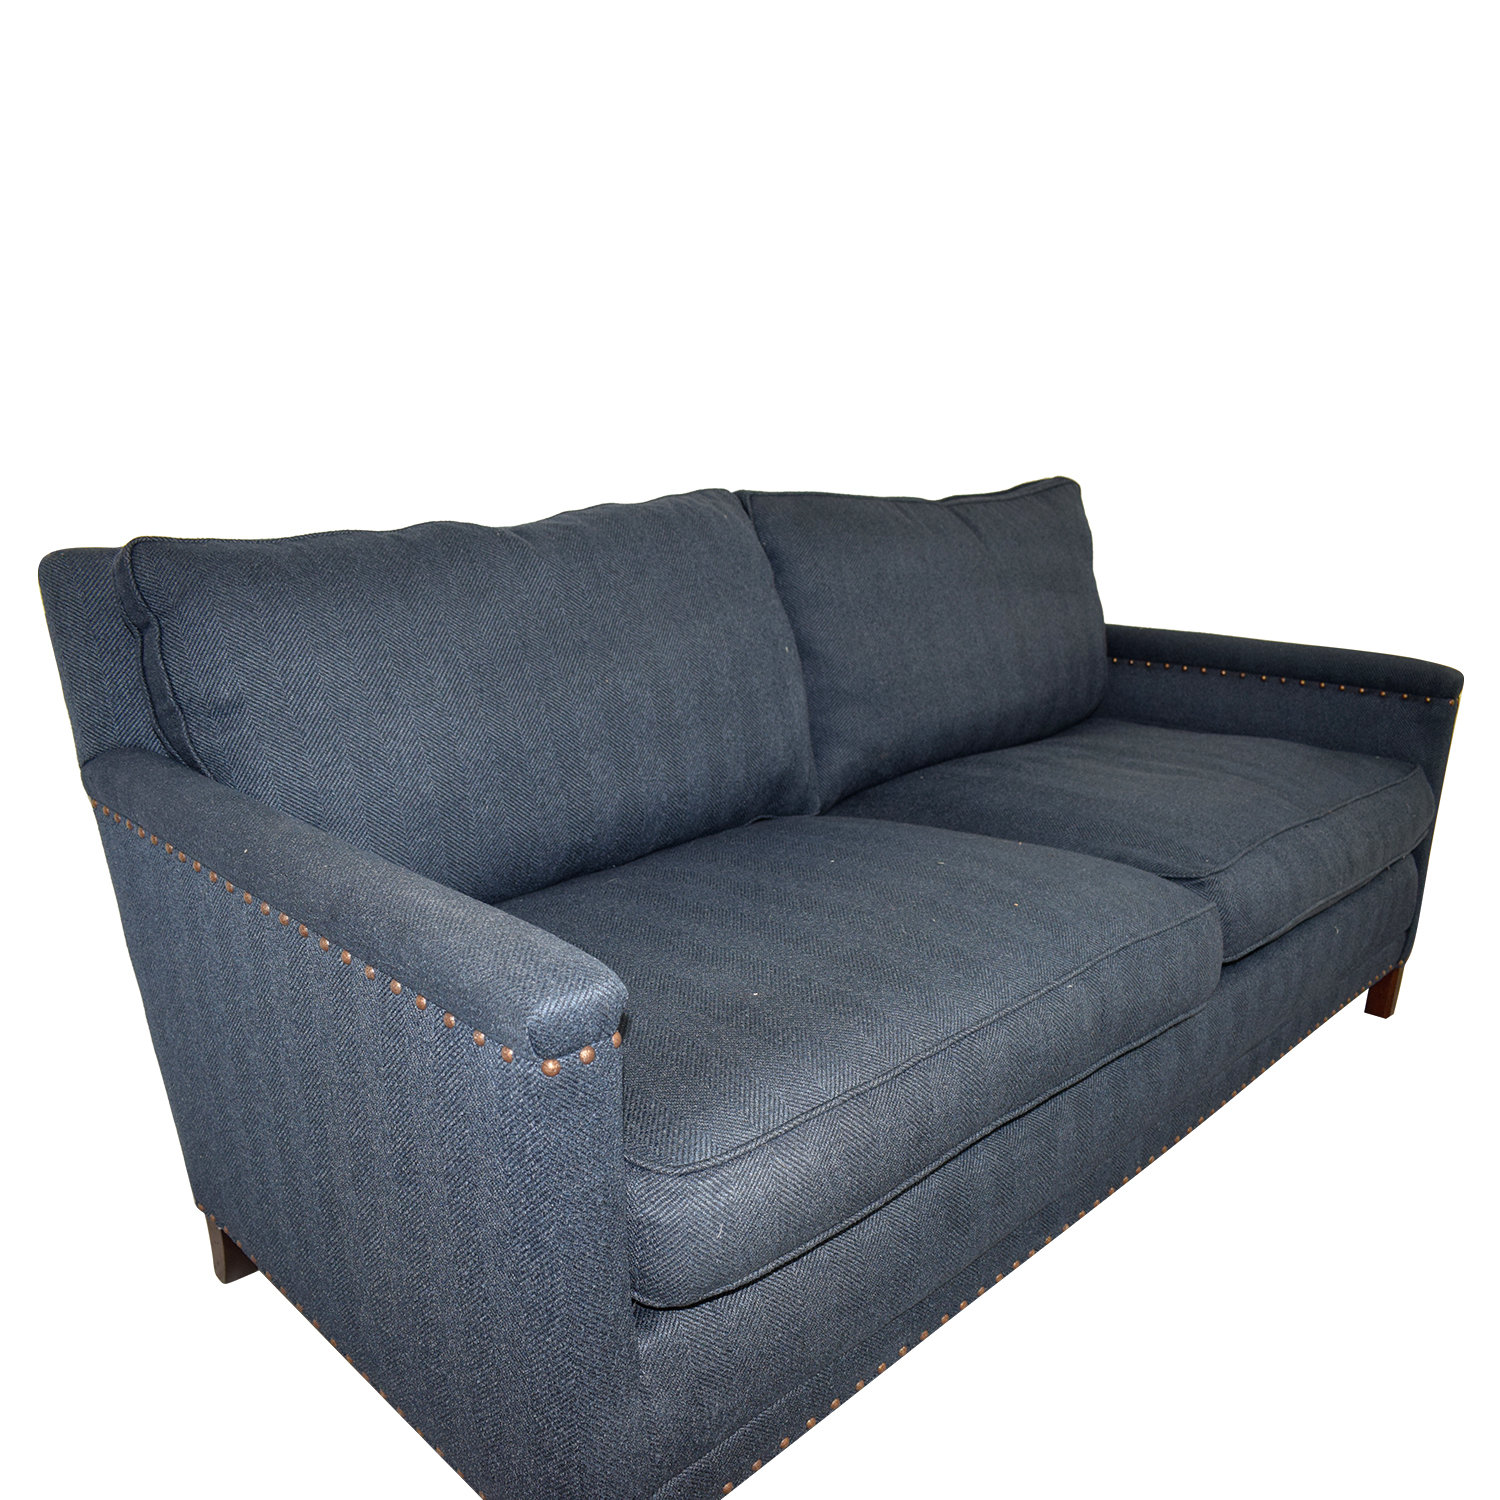 Lee Industries Lee Industries Navy Nail Head Two-Cushion Sofa second hand